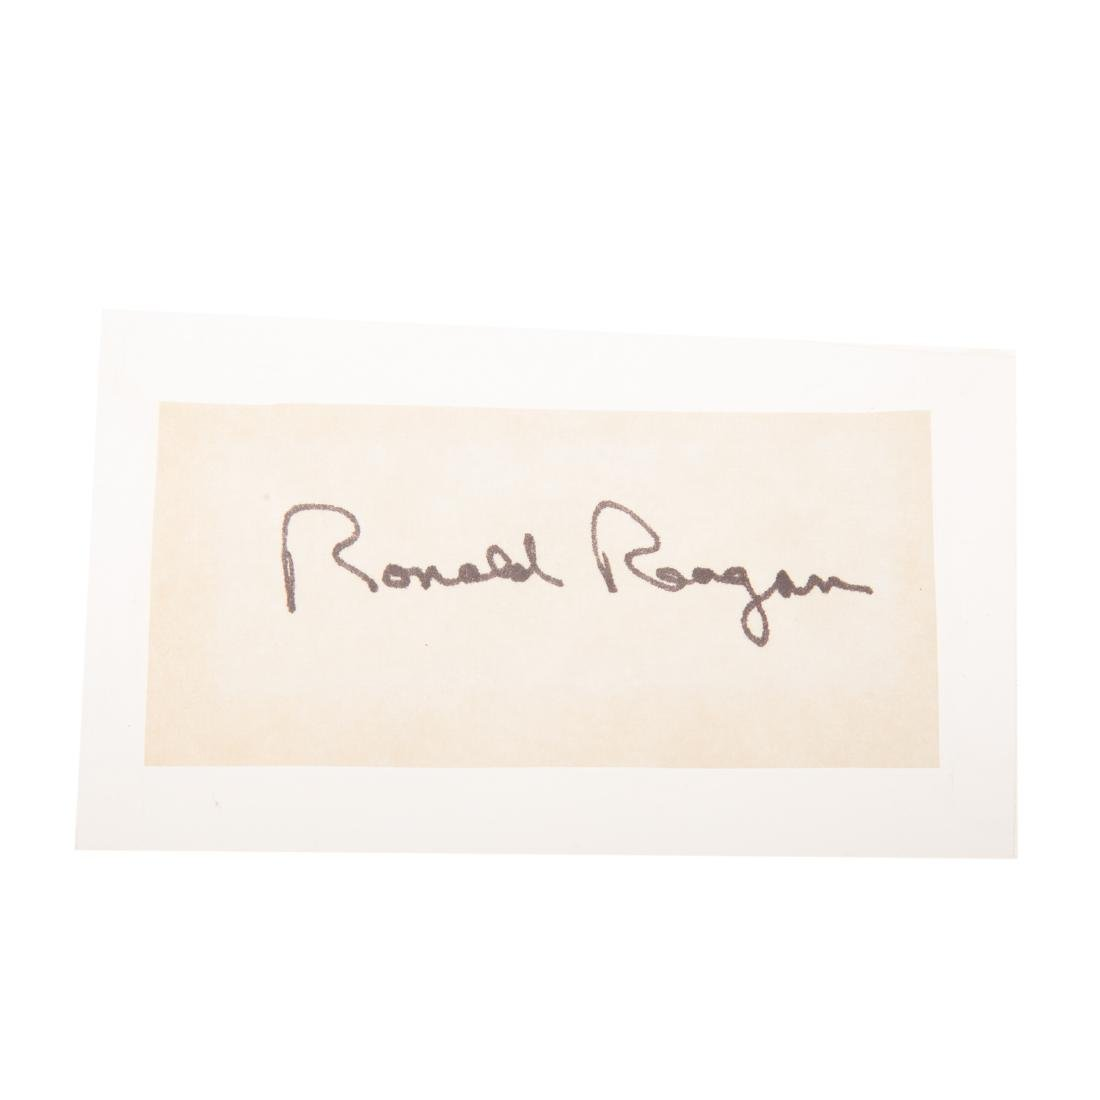 Eight former United States presidents signatures - 5